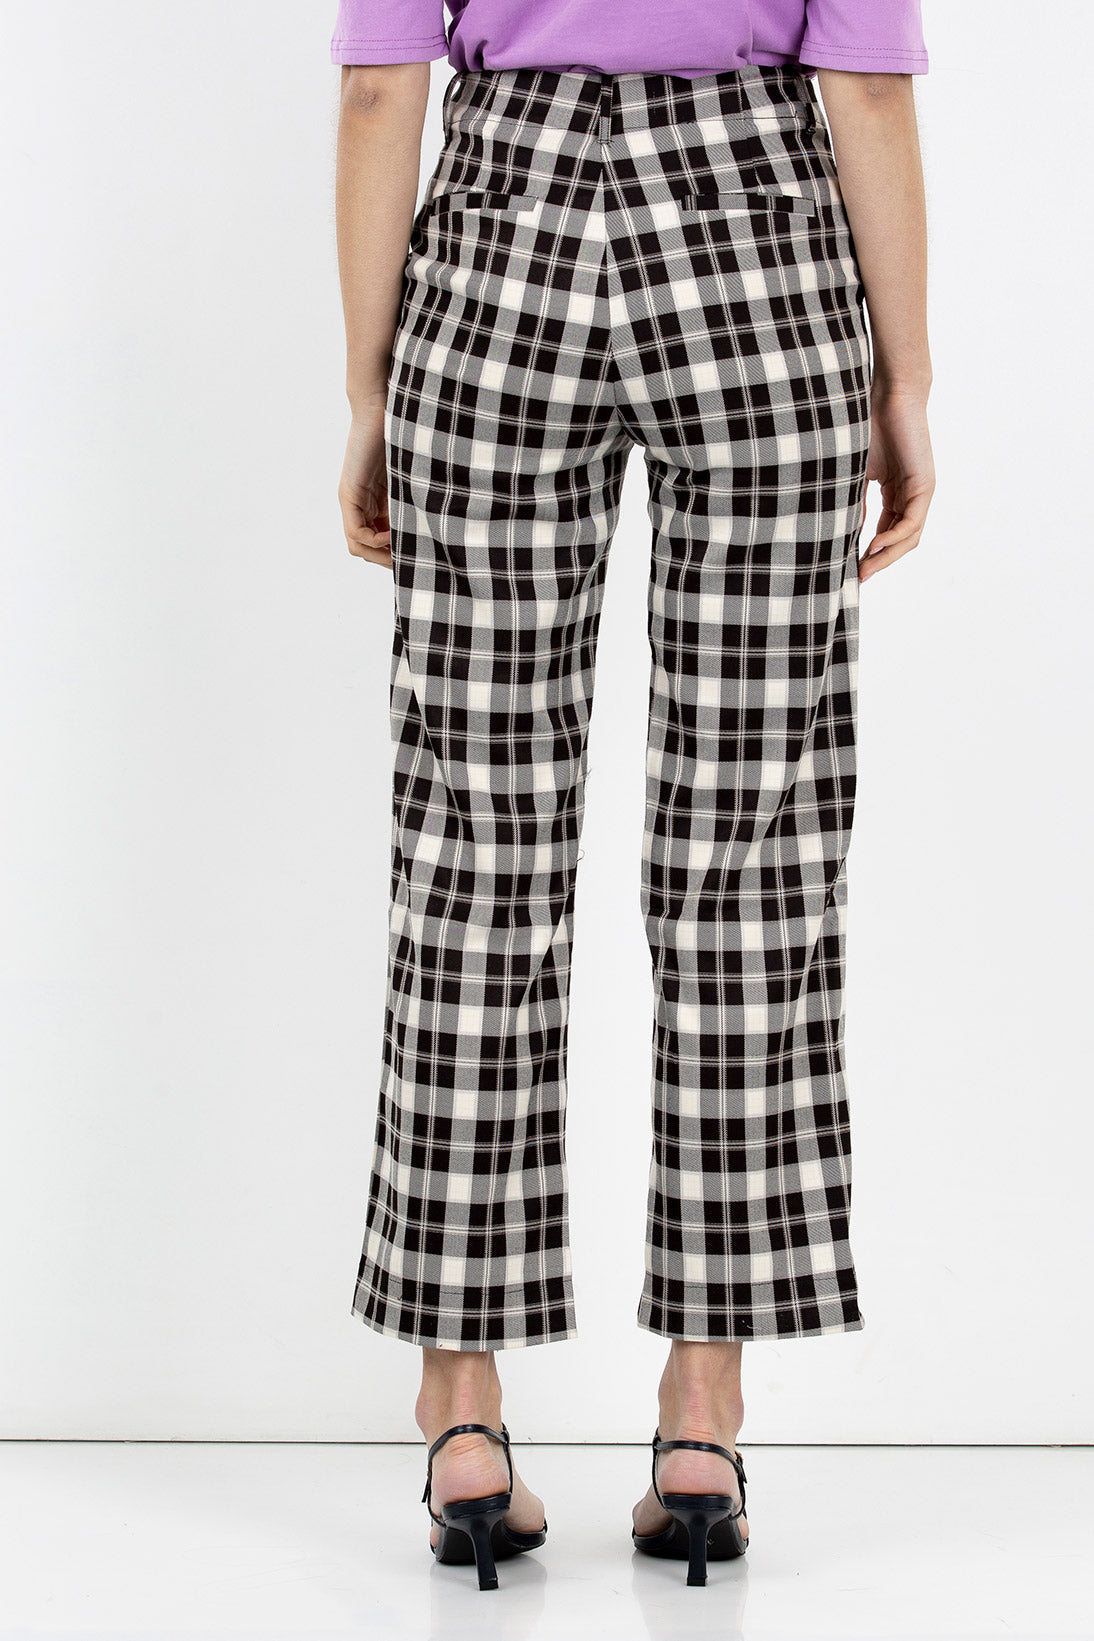 madam plaid pants